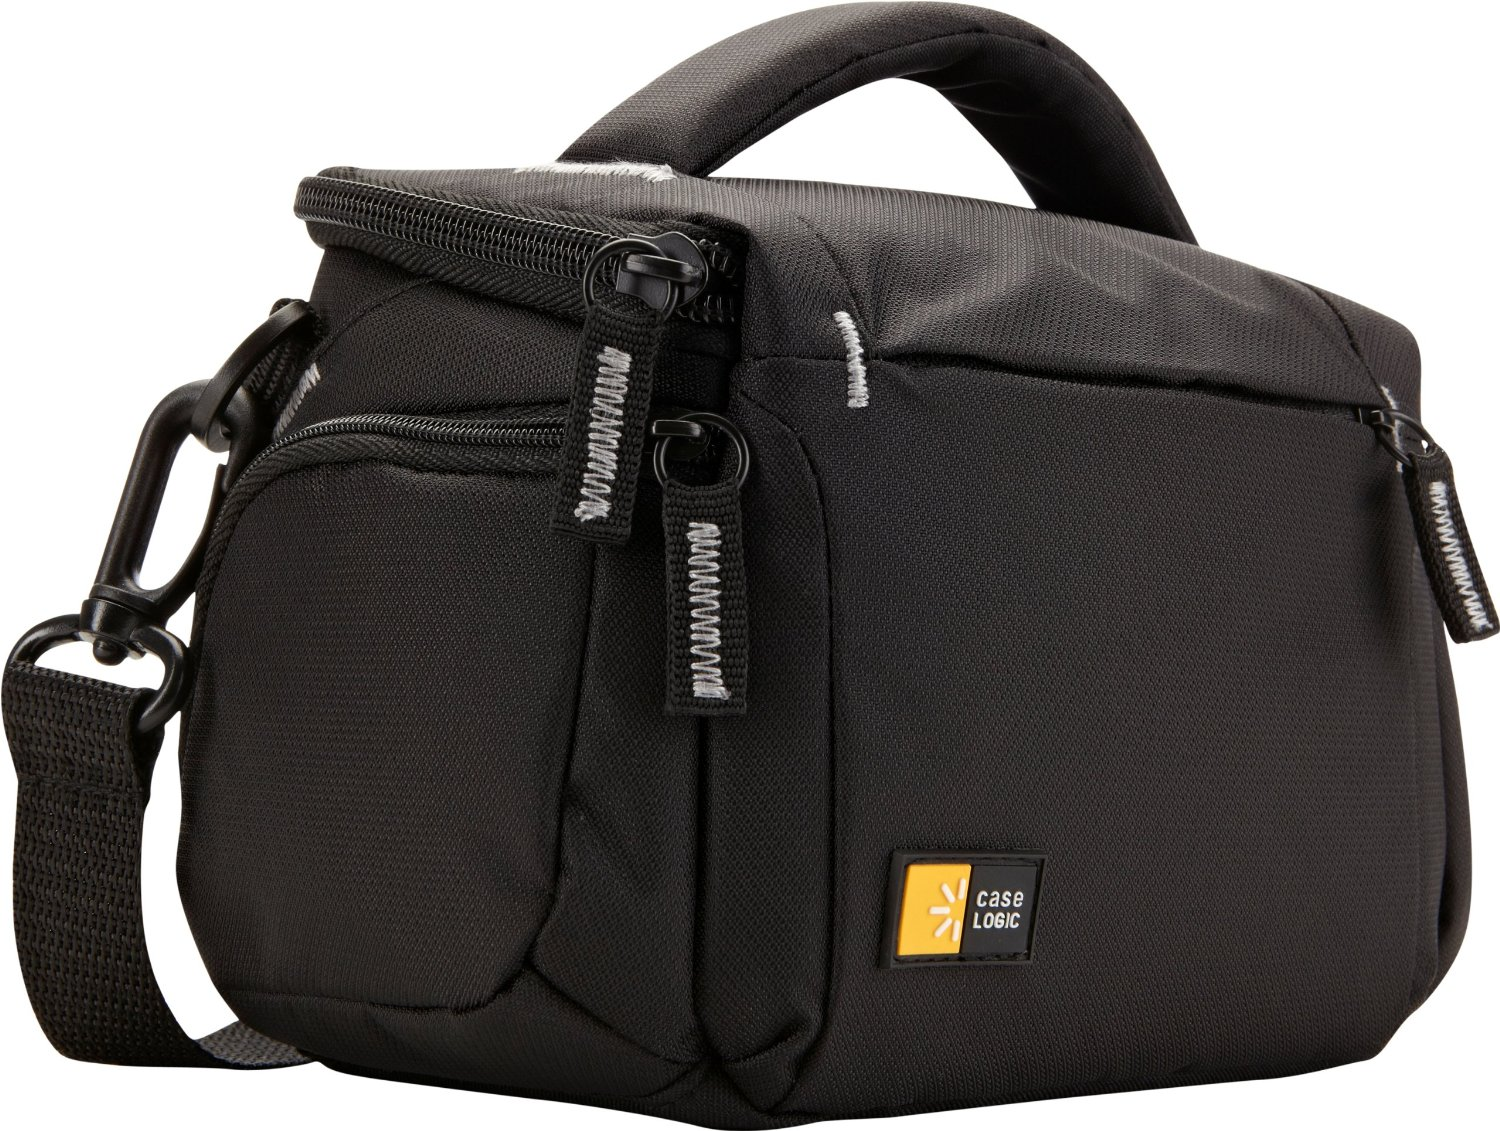 Case Logic Caompact Bag TBC-405-BLACK